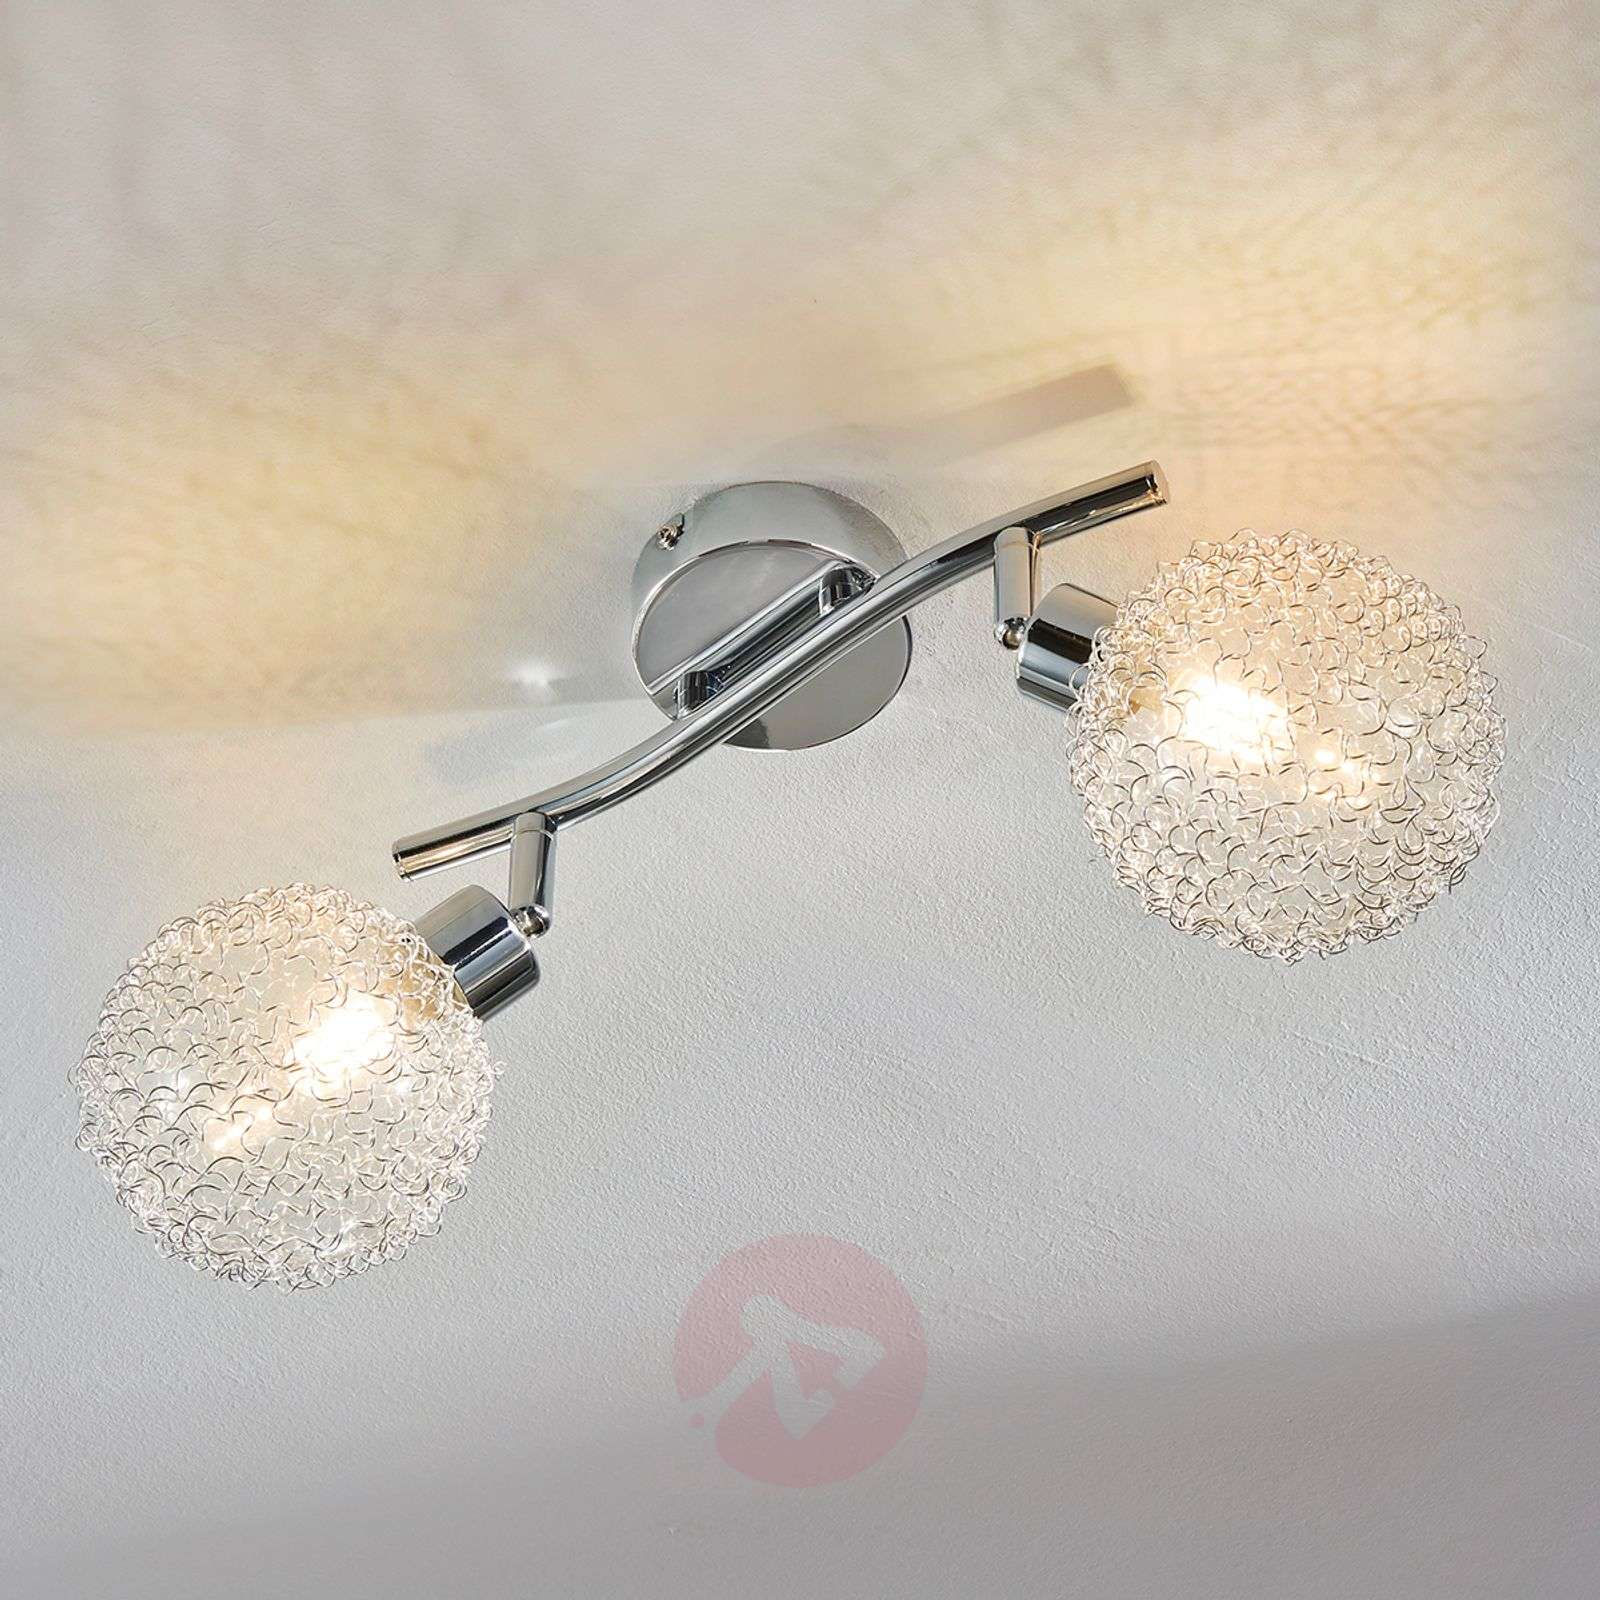 2-bulb LED ceiling lamp Ticino-9620778-04